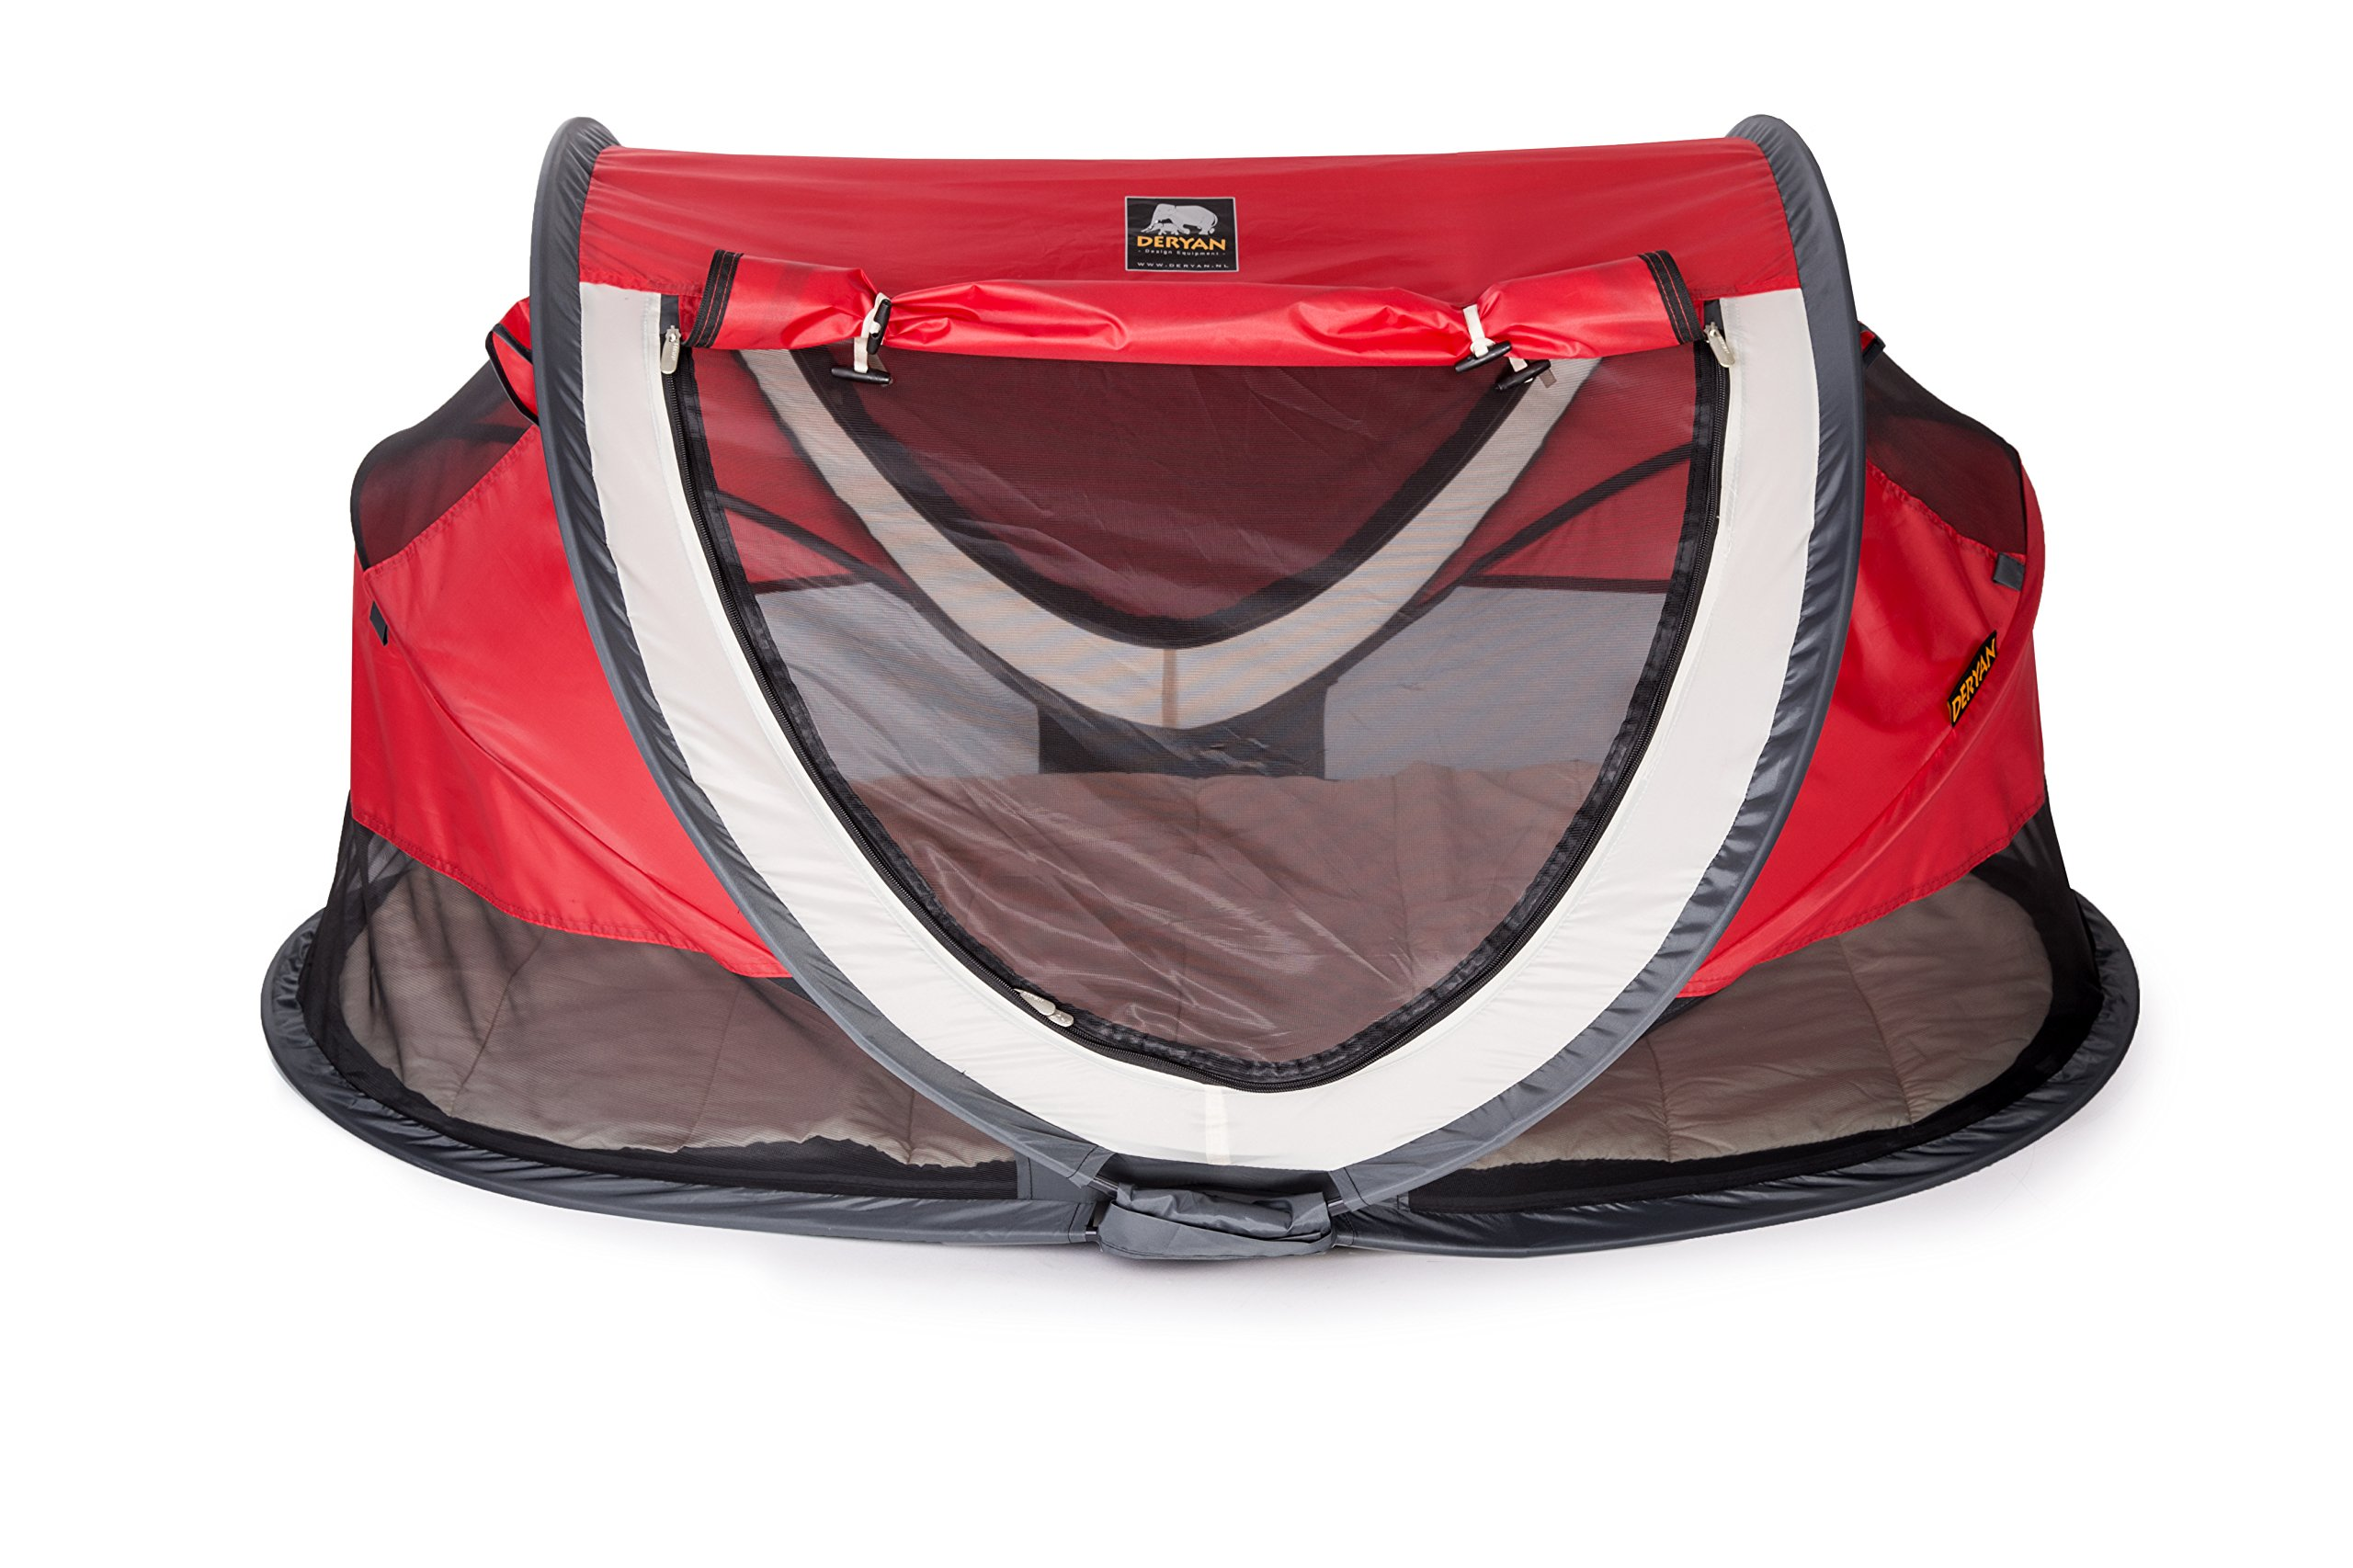 Travel Cot Peuter Luxe (Red) Deryan Perfect for the beach, the park or the back garden for playing in or for naps Can Pops up immediately, no poles or fiddly frames to put together. Lightweight and compact in its zip up bag 1